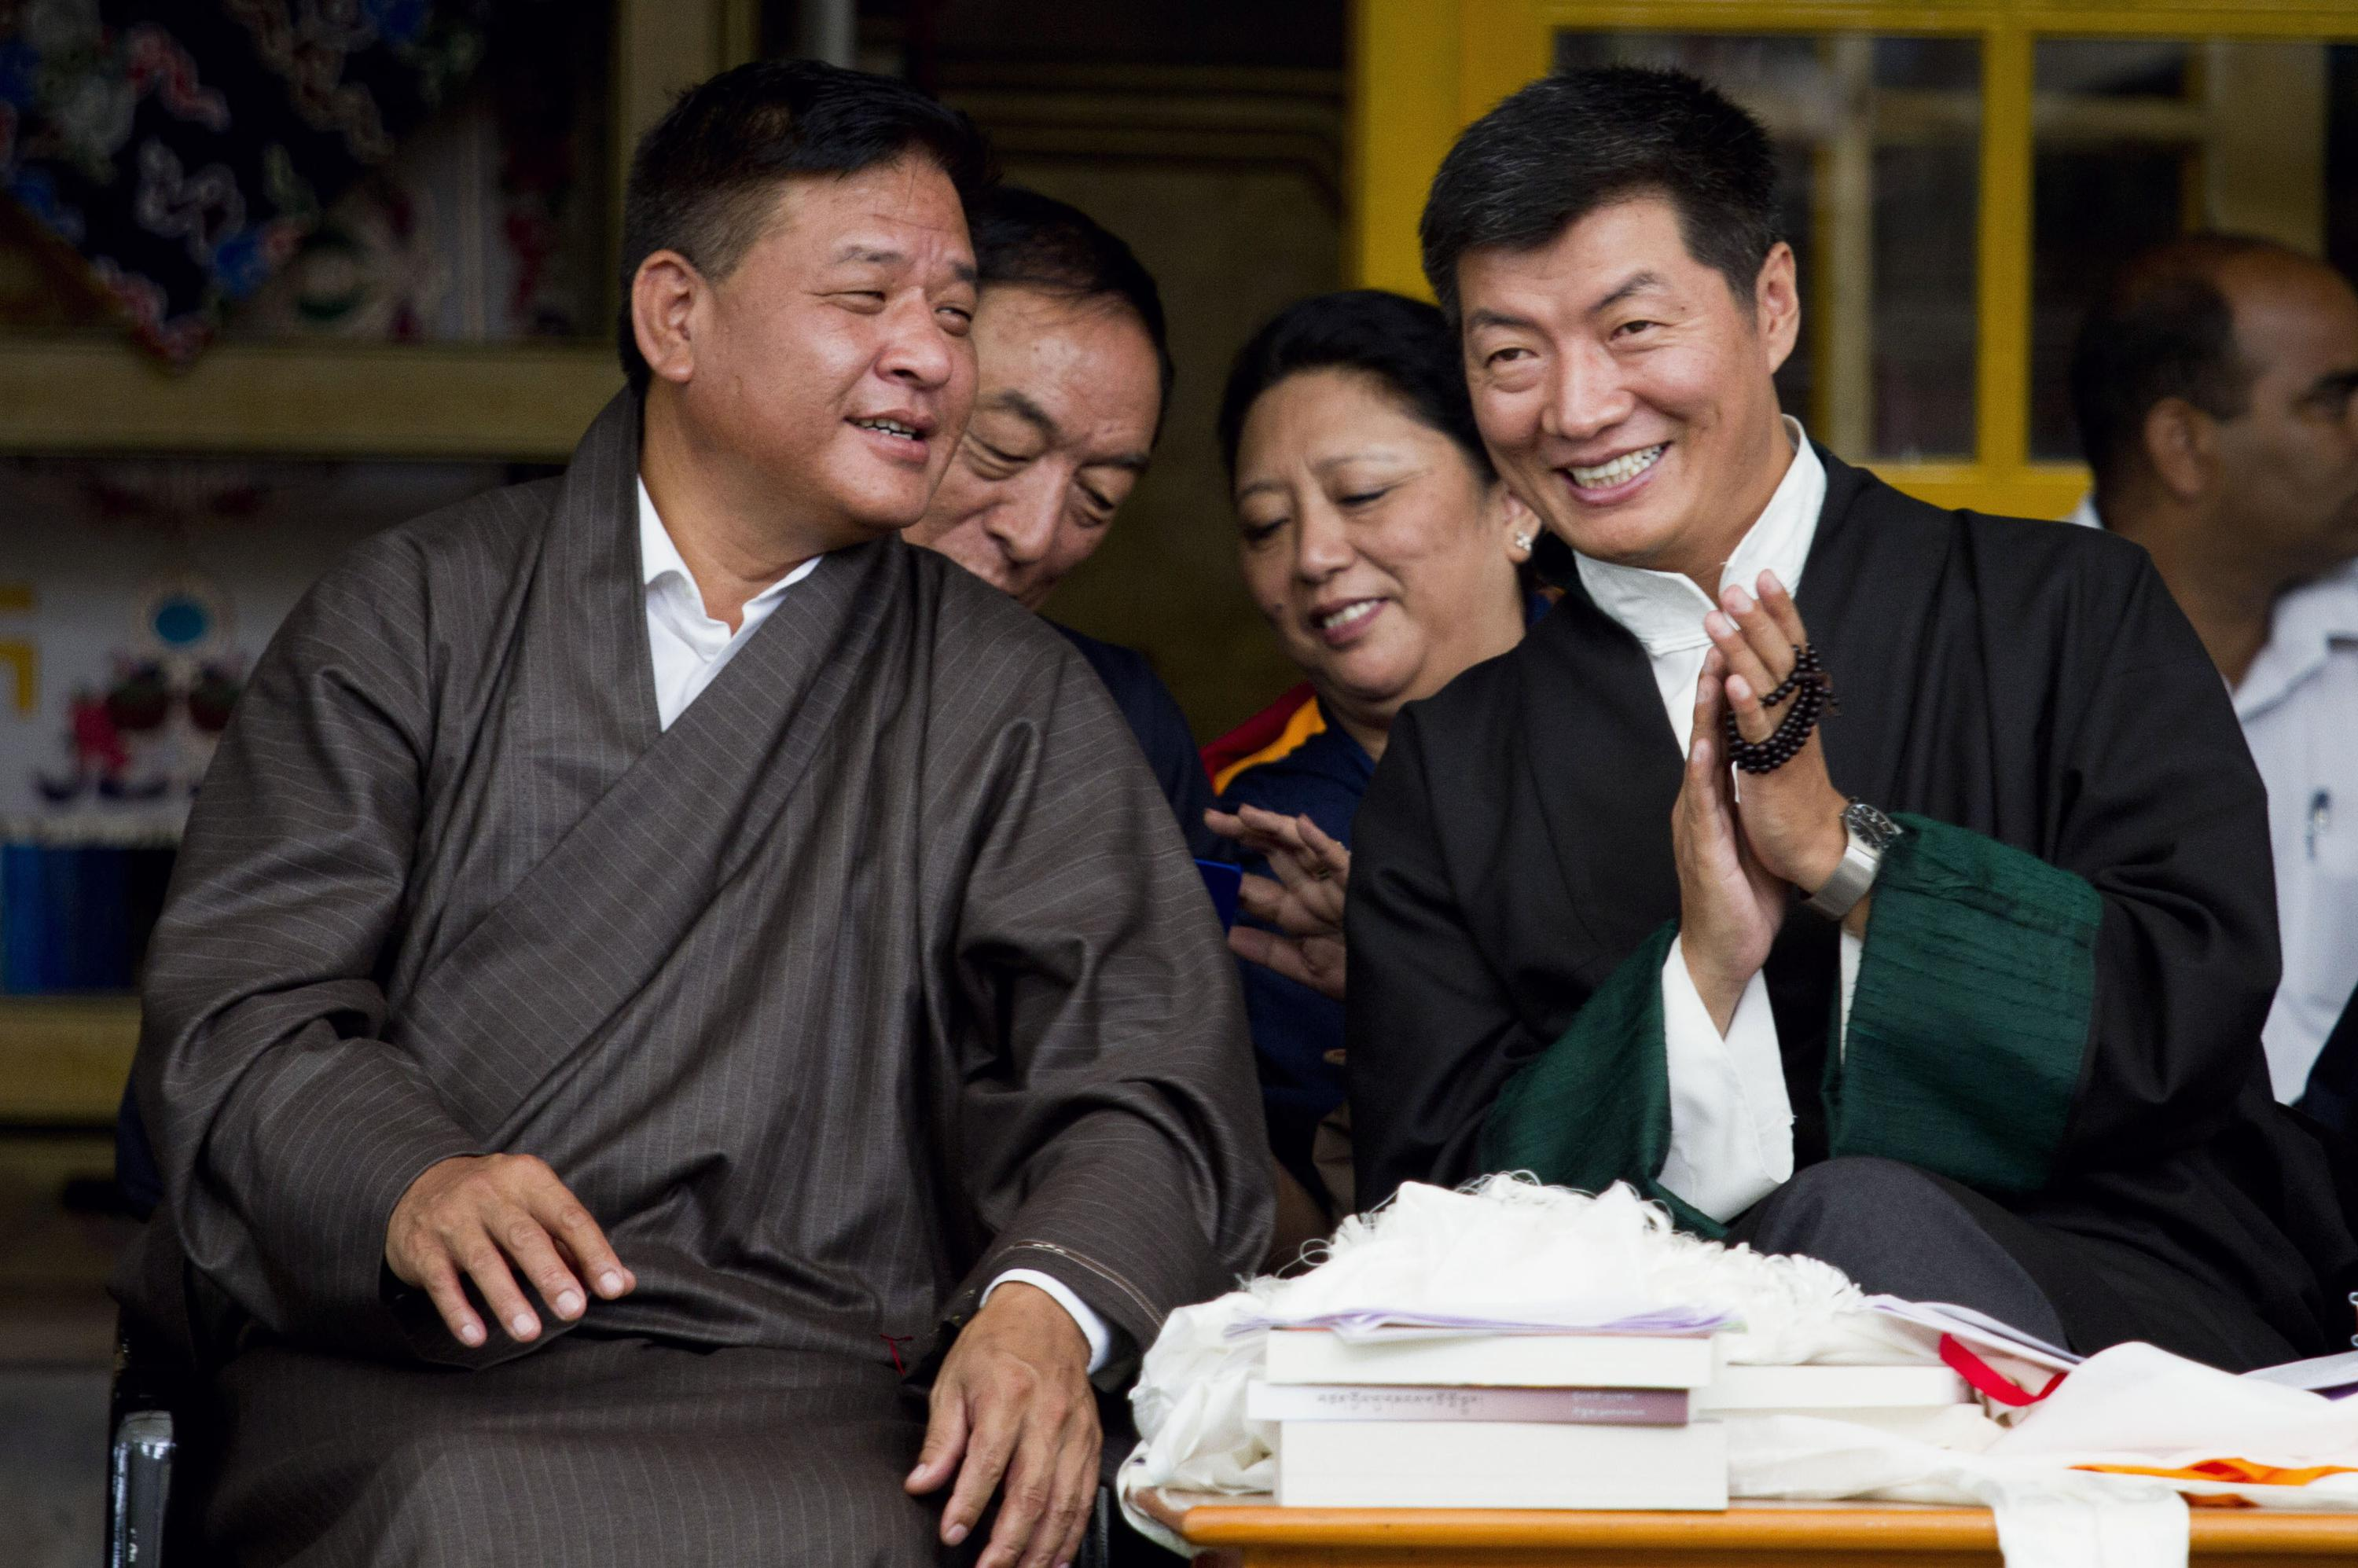 Penpa Tsering elected president of Tibetan exile government